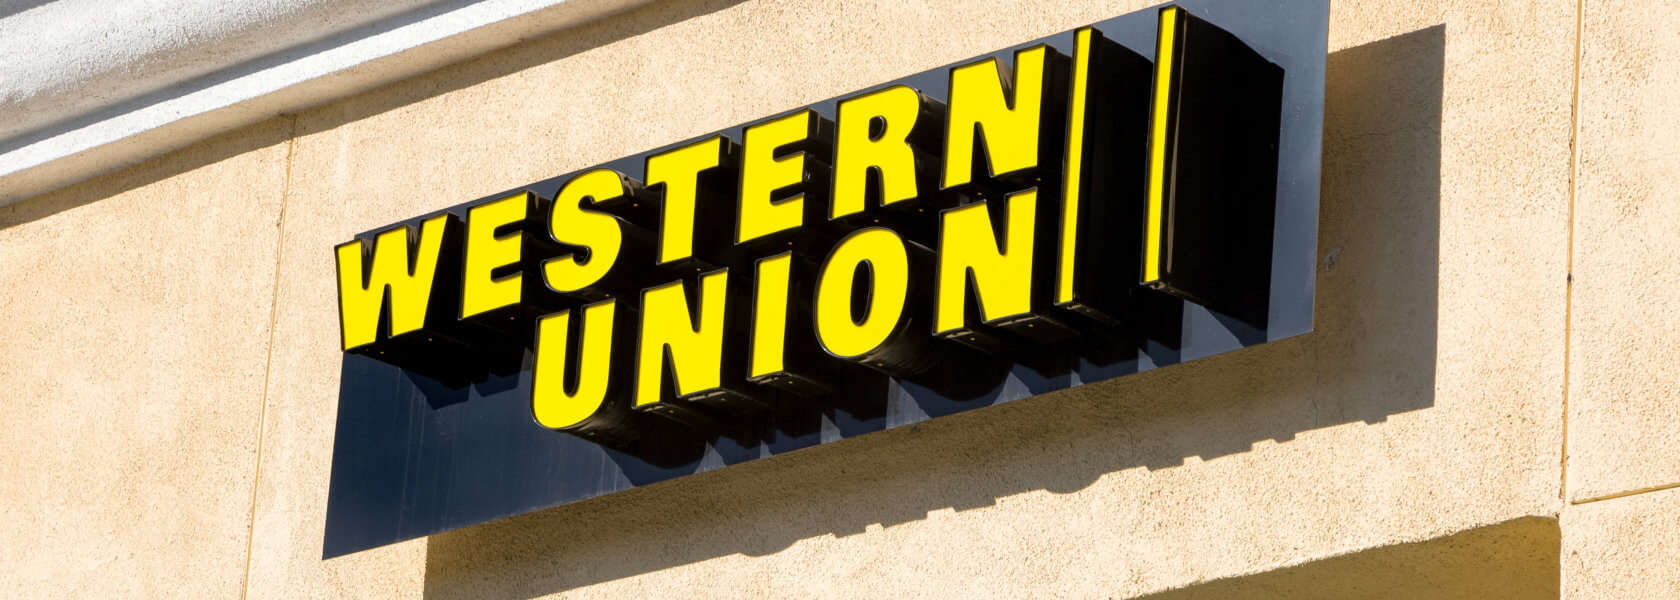 Western Union Foundation Fellowship For Entrepreneurs And Community Leaders